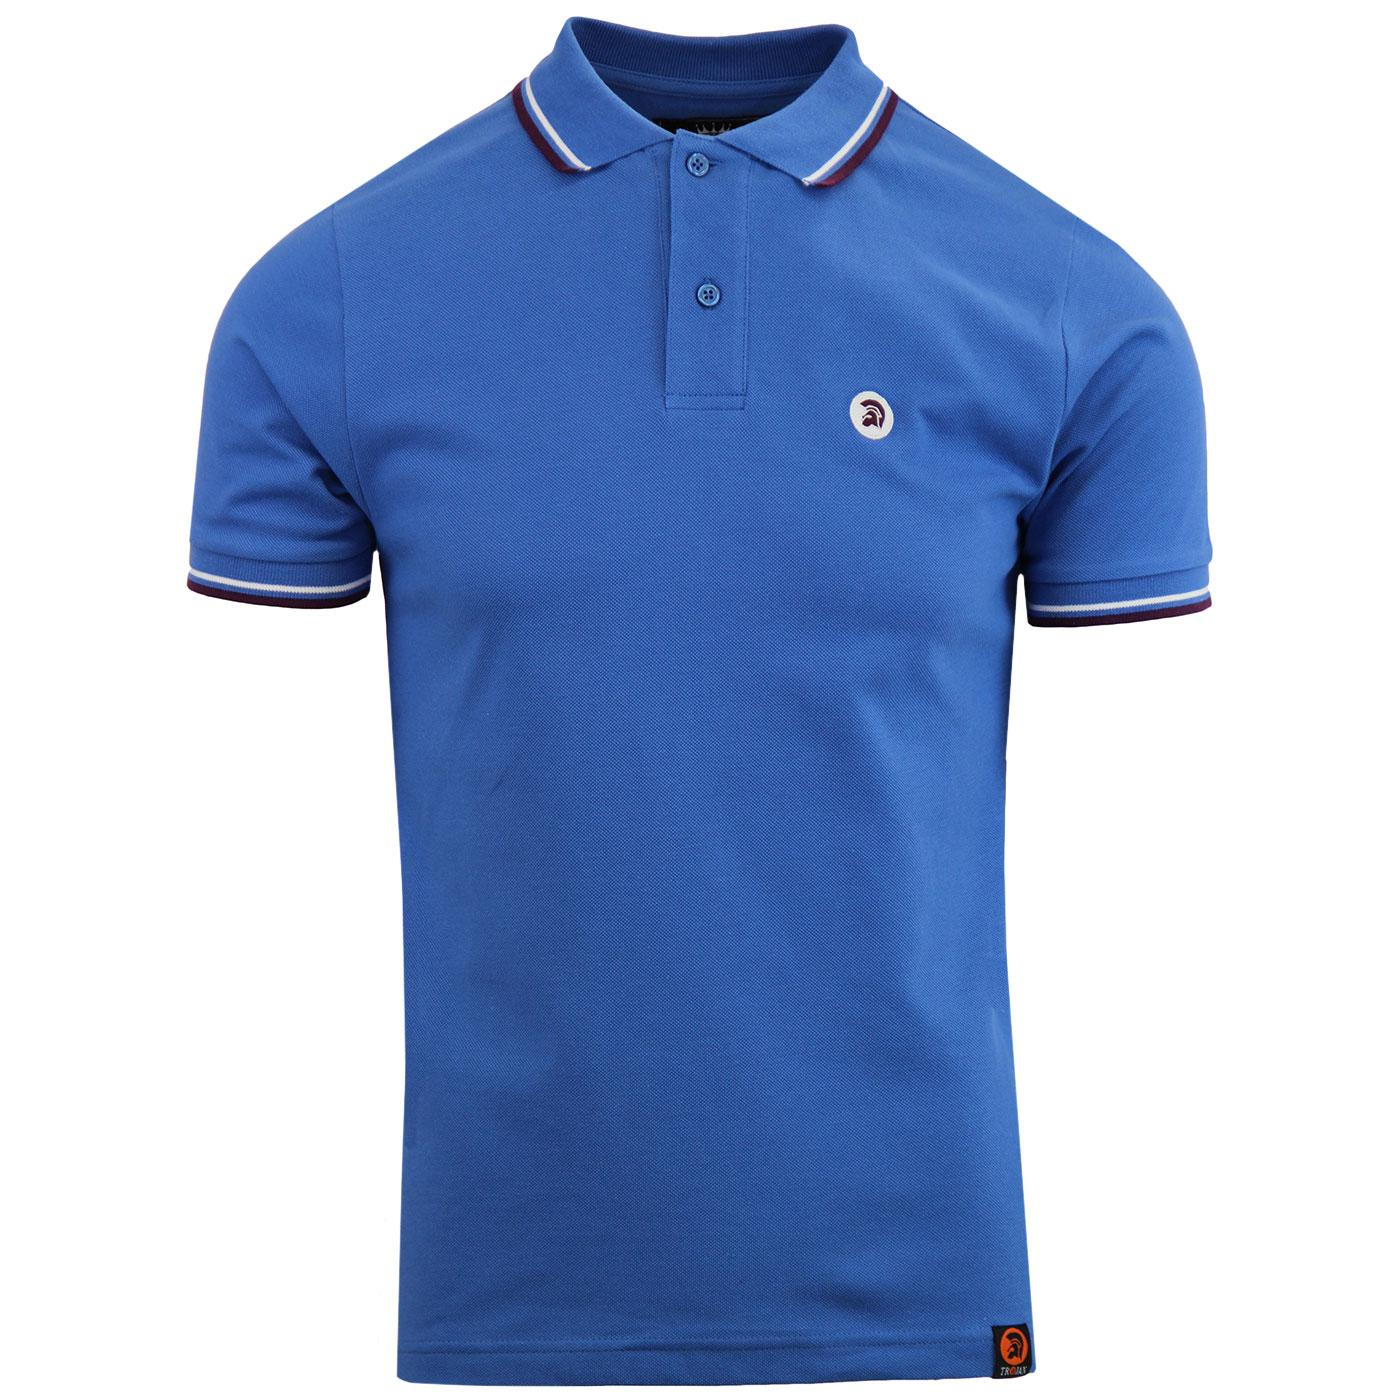 TROJAN RECORDS Men's Mod Tipped Pique Polo SB